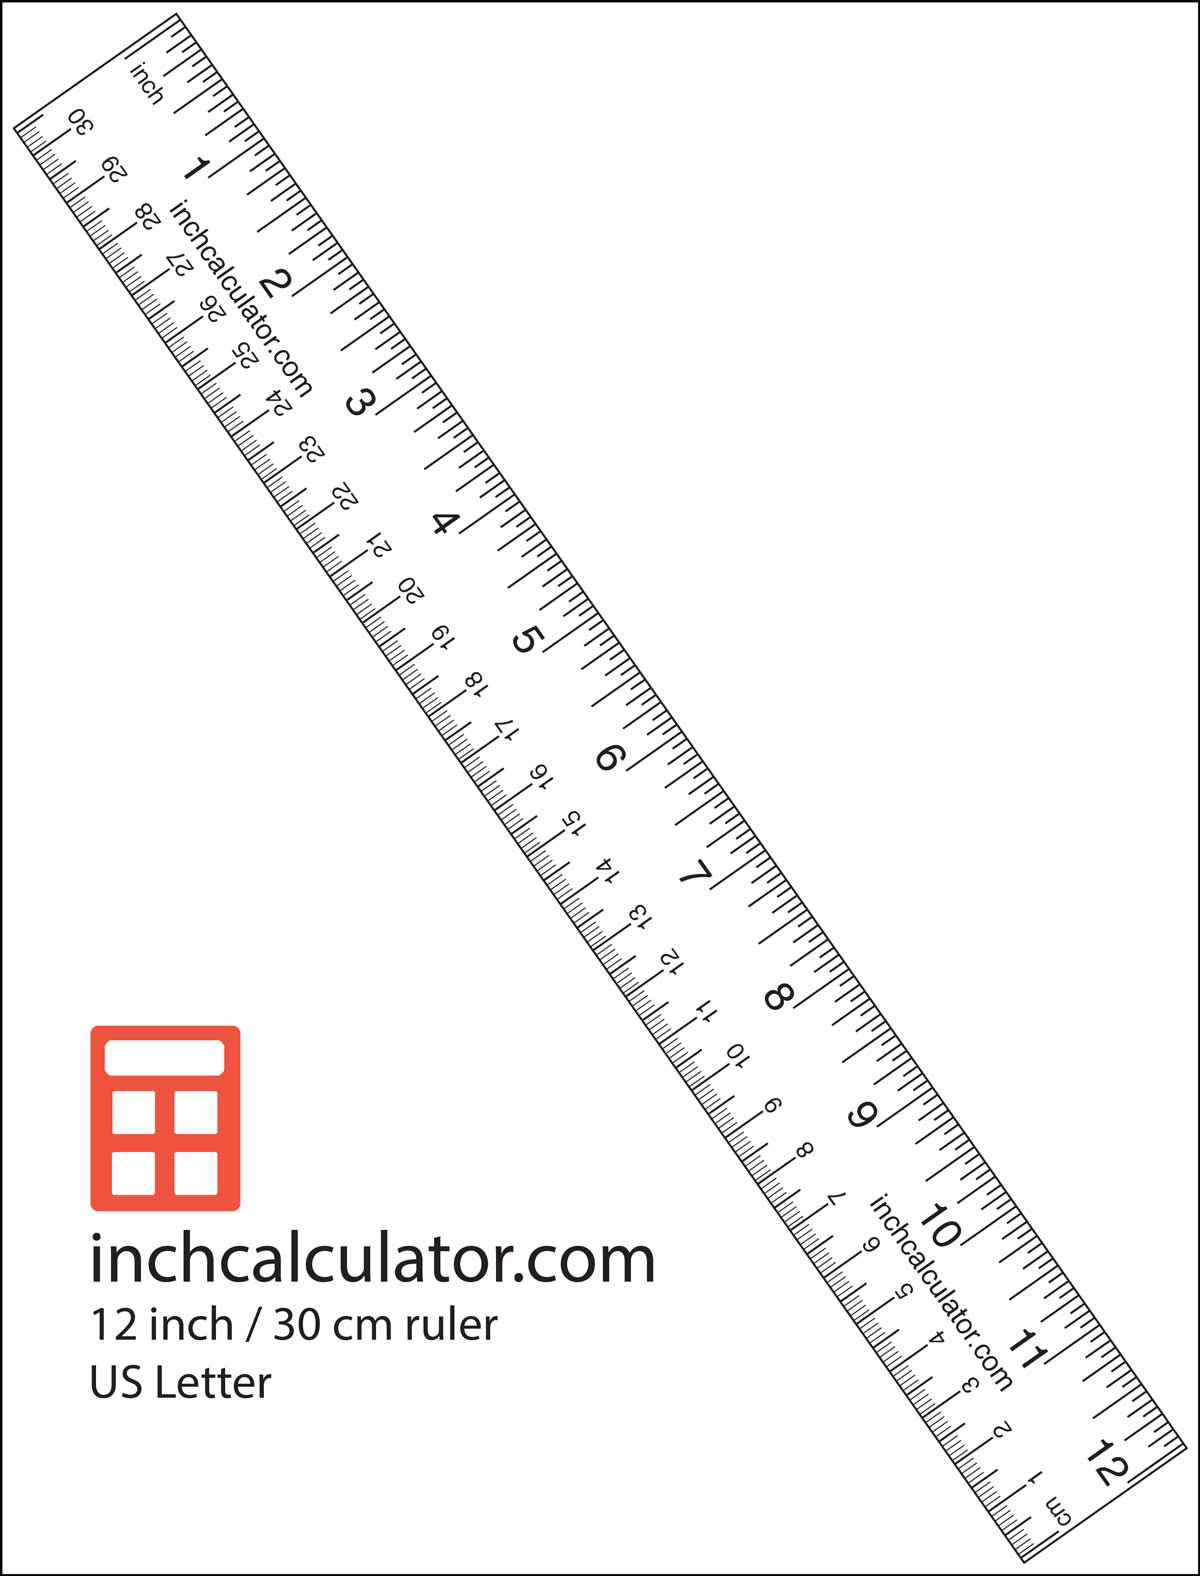 picture about Centimeter Ruler Printable titled Printable Rulers - Free of charge Downloadable 12\